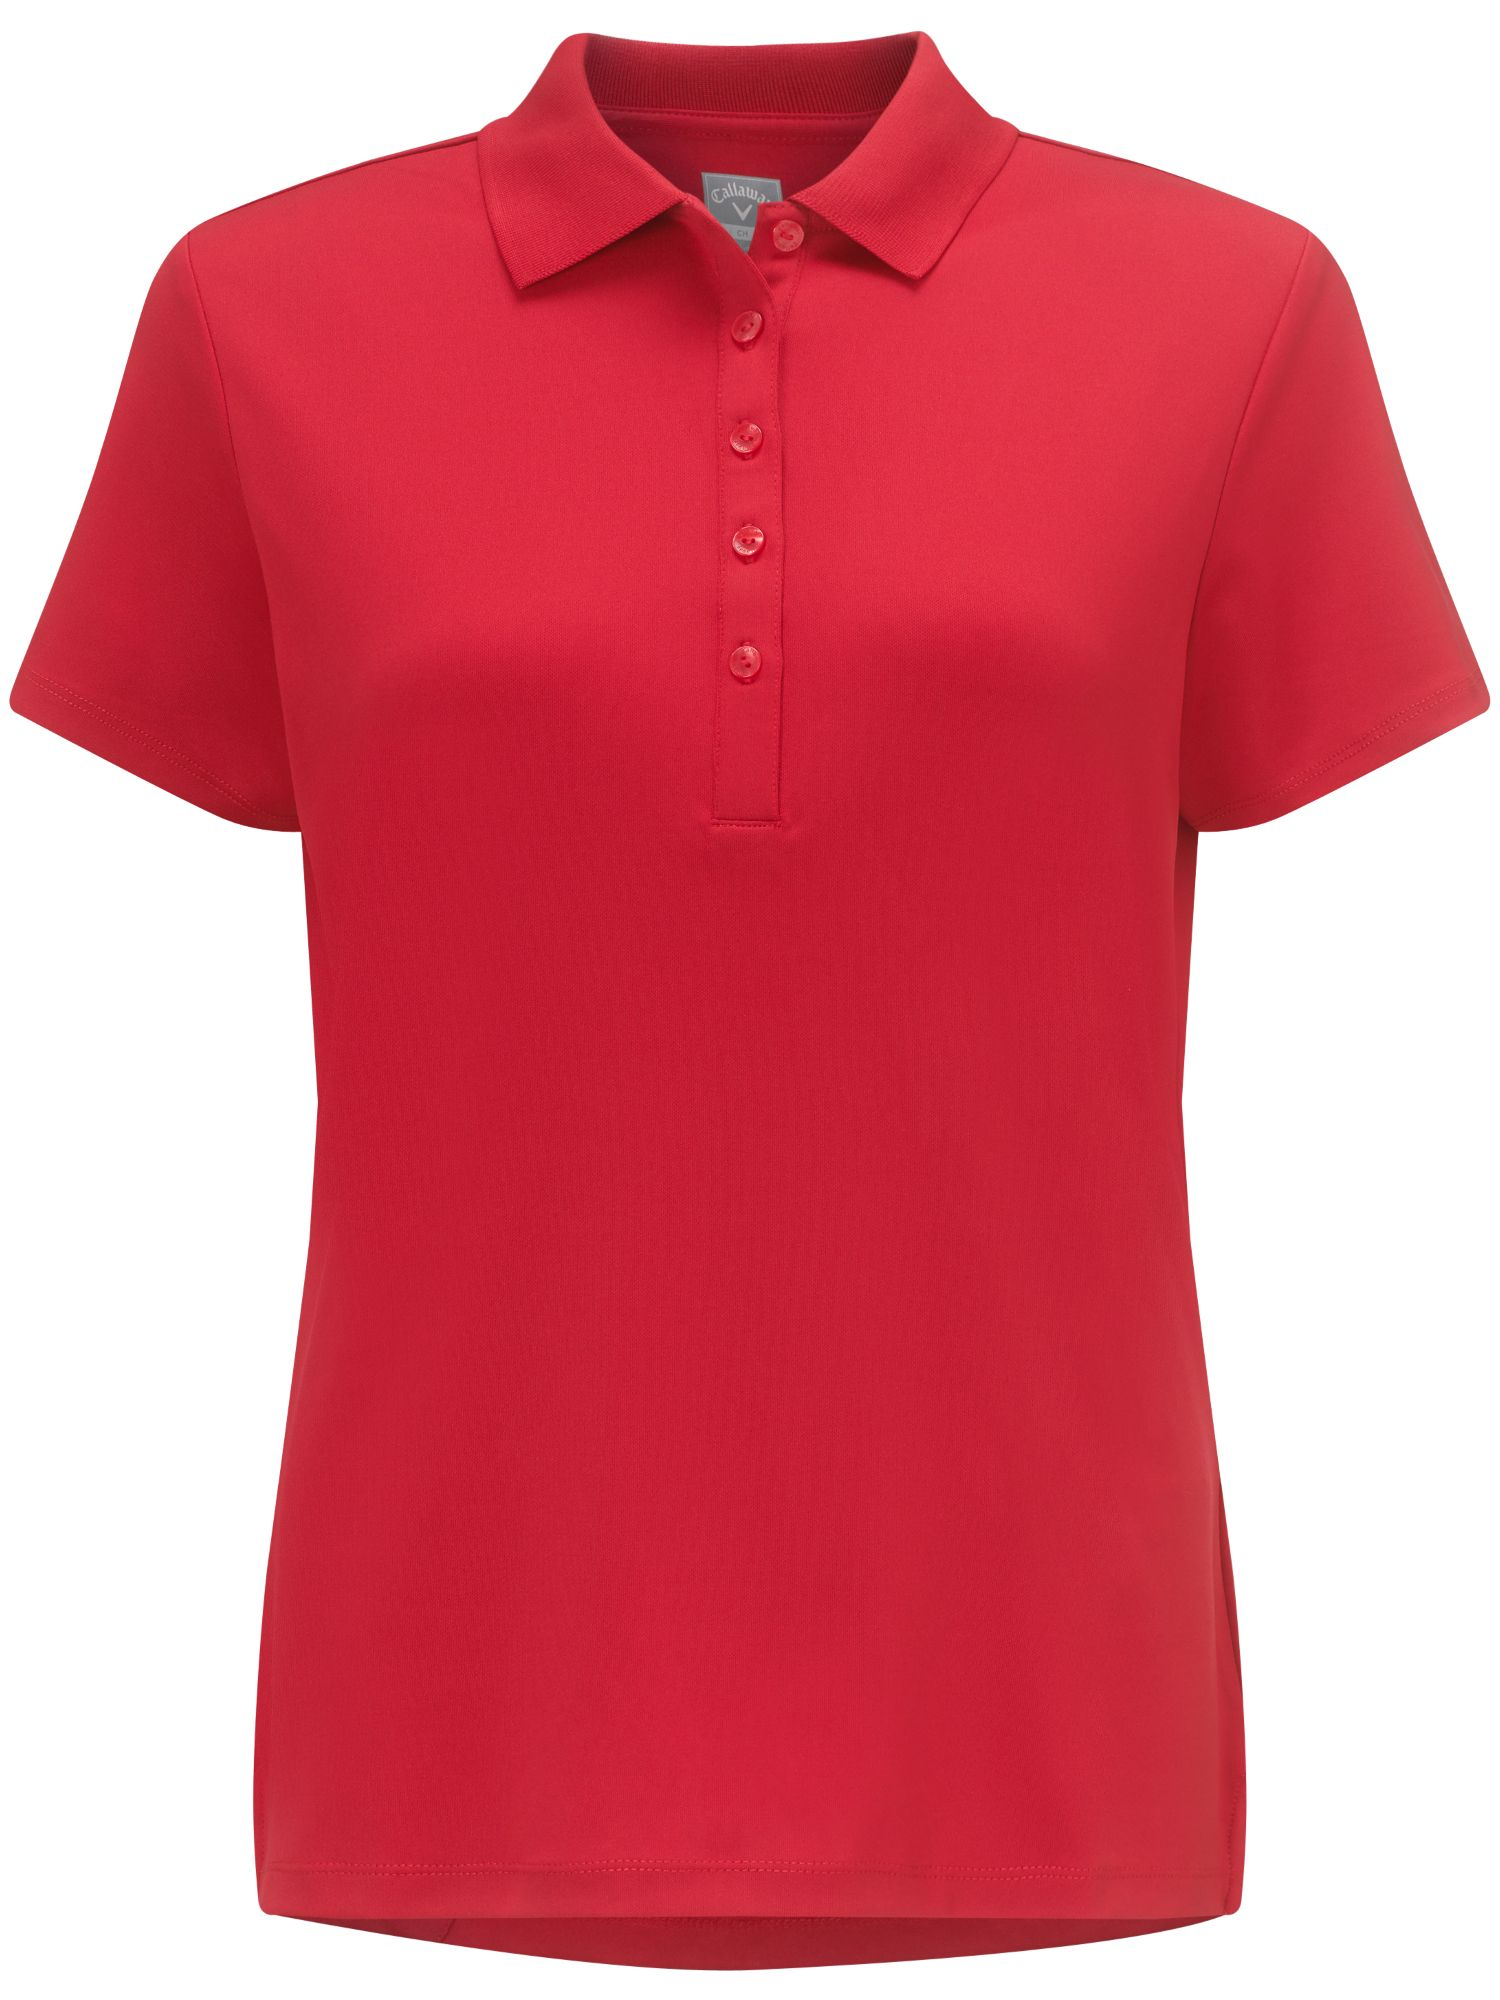 Callaway Hex Polo, Red